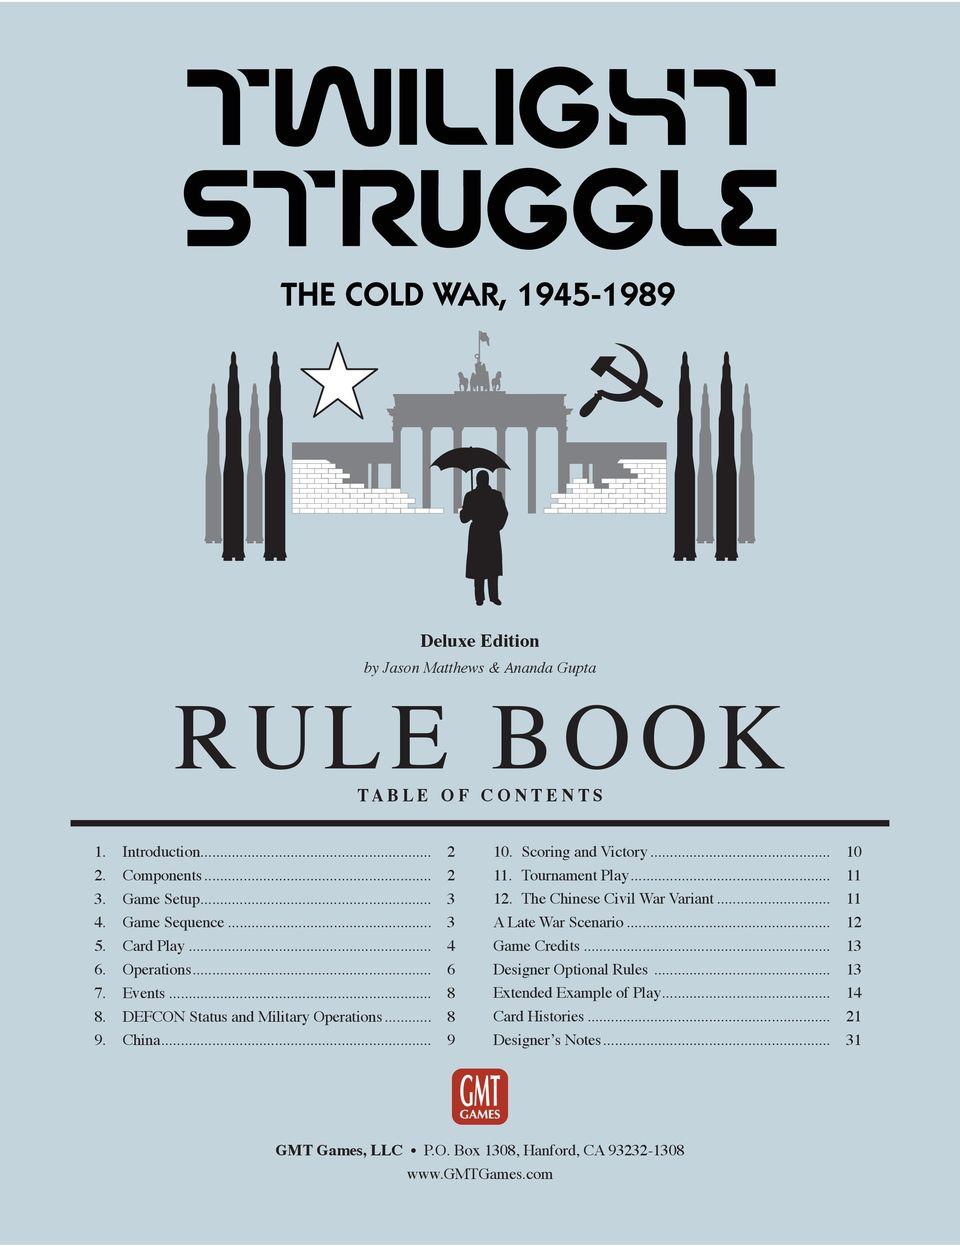 Scoring and Victory... 10 11. Tournament Play... 11 12. The Chinese Civil War Variant... 11 A Late War Scenario... 12 Game Credits... 13 Designer Optional Rules.